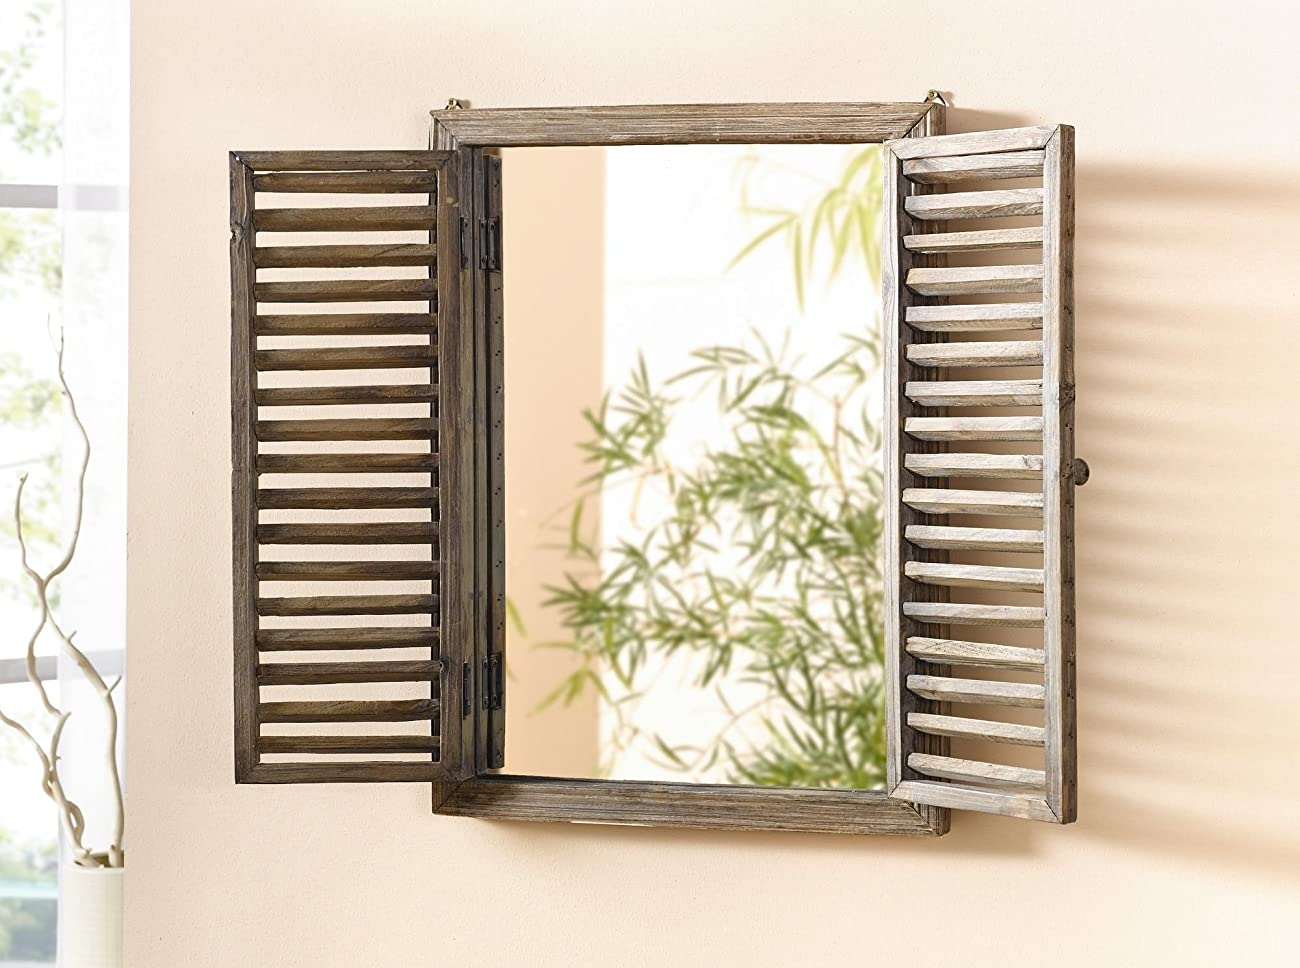 Shuttered Mirror with Frame - Rustic Mirror with Wooden Frame and Shutter Design Product SKU: HD223944 1